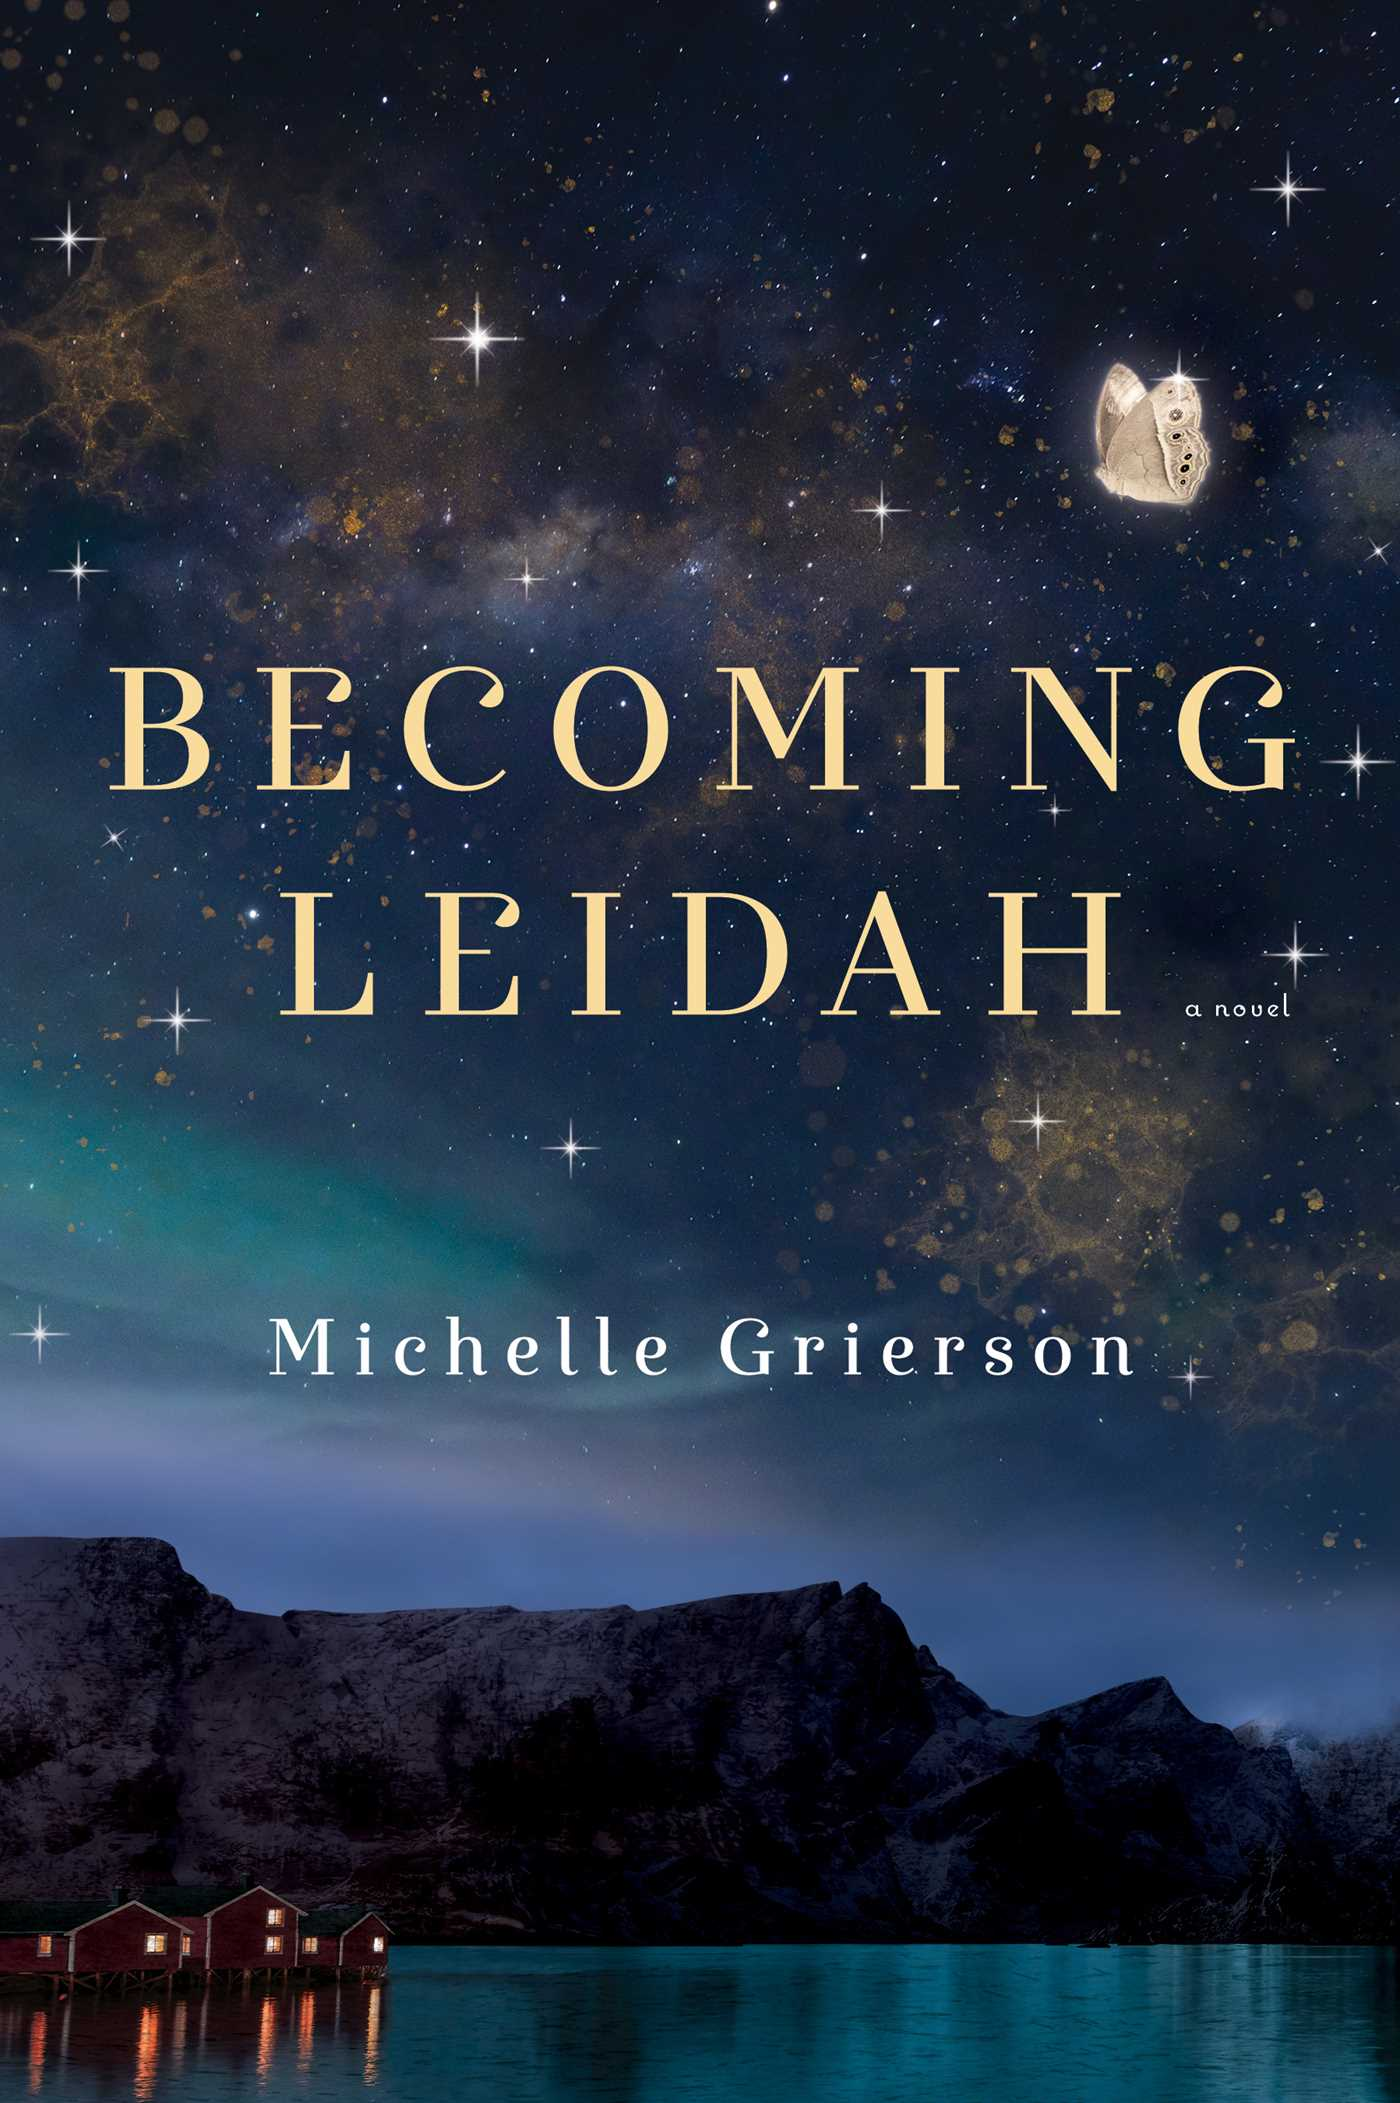 Becoming Leidah   Book by Michelle Grierson   Official Publisher Page    Simon & Schuster